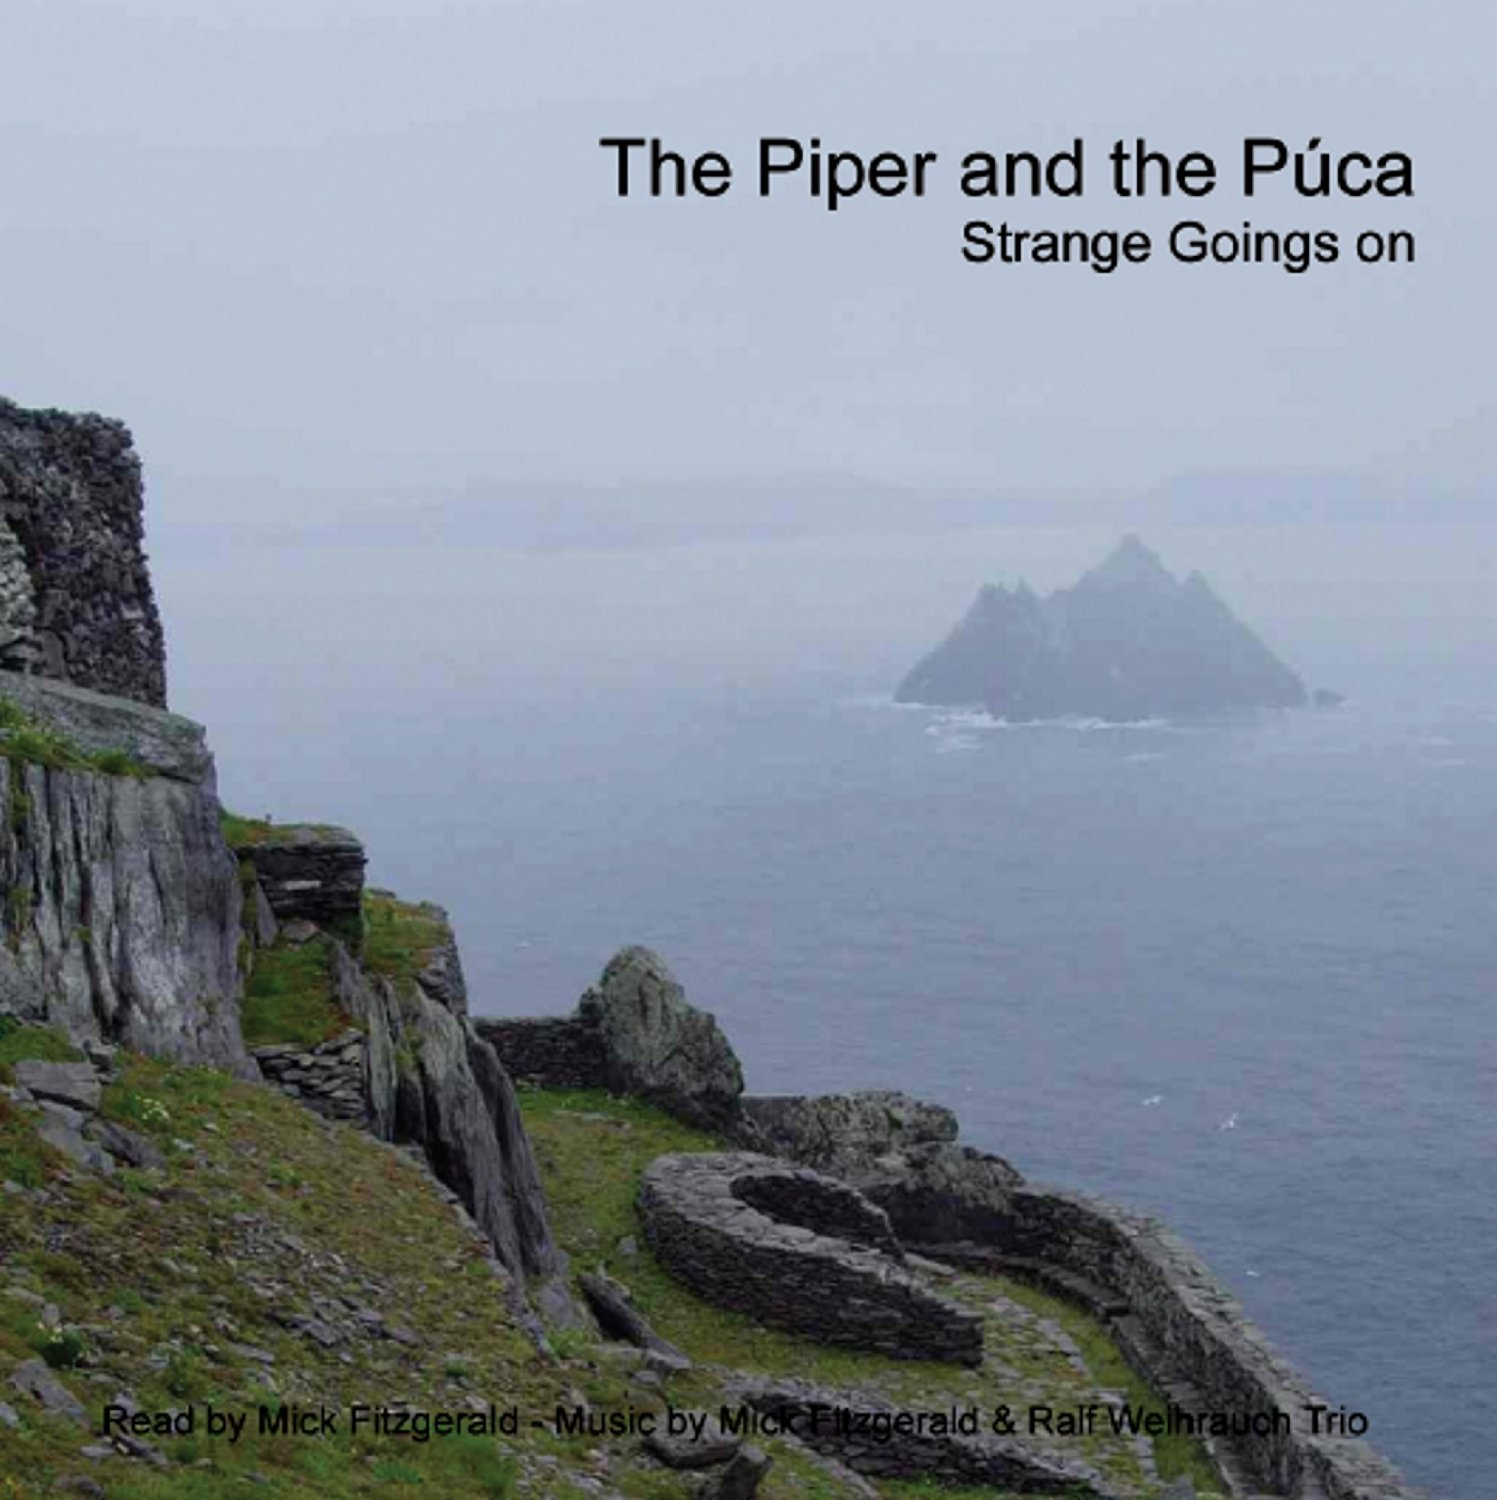 The Piper and the Púca